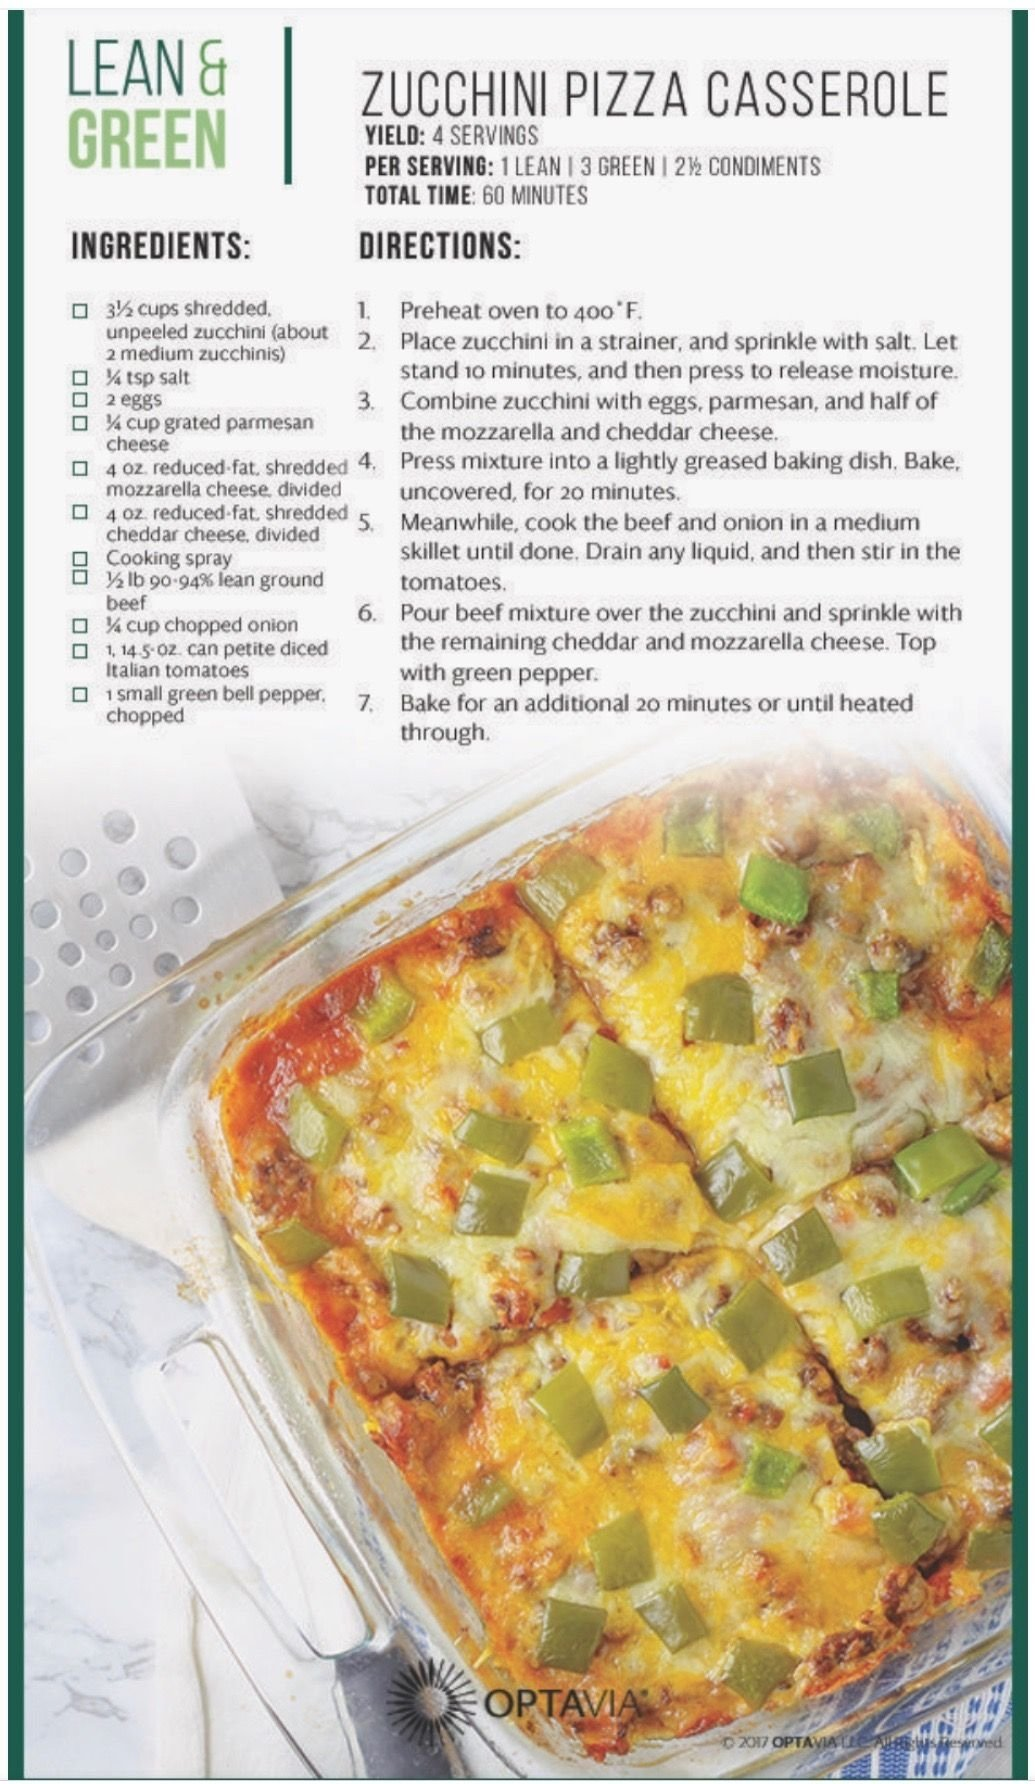 10 Trendy Medifast Lean And Green Meal Ideas zucchini pizza casserole letss eat optavia and lean green 2021